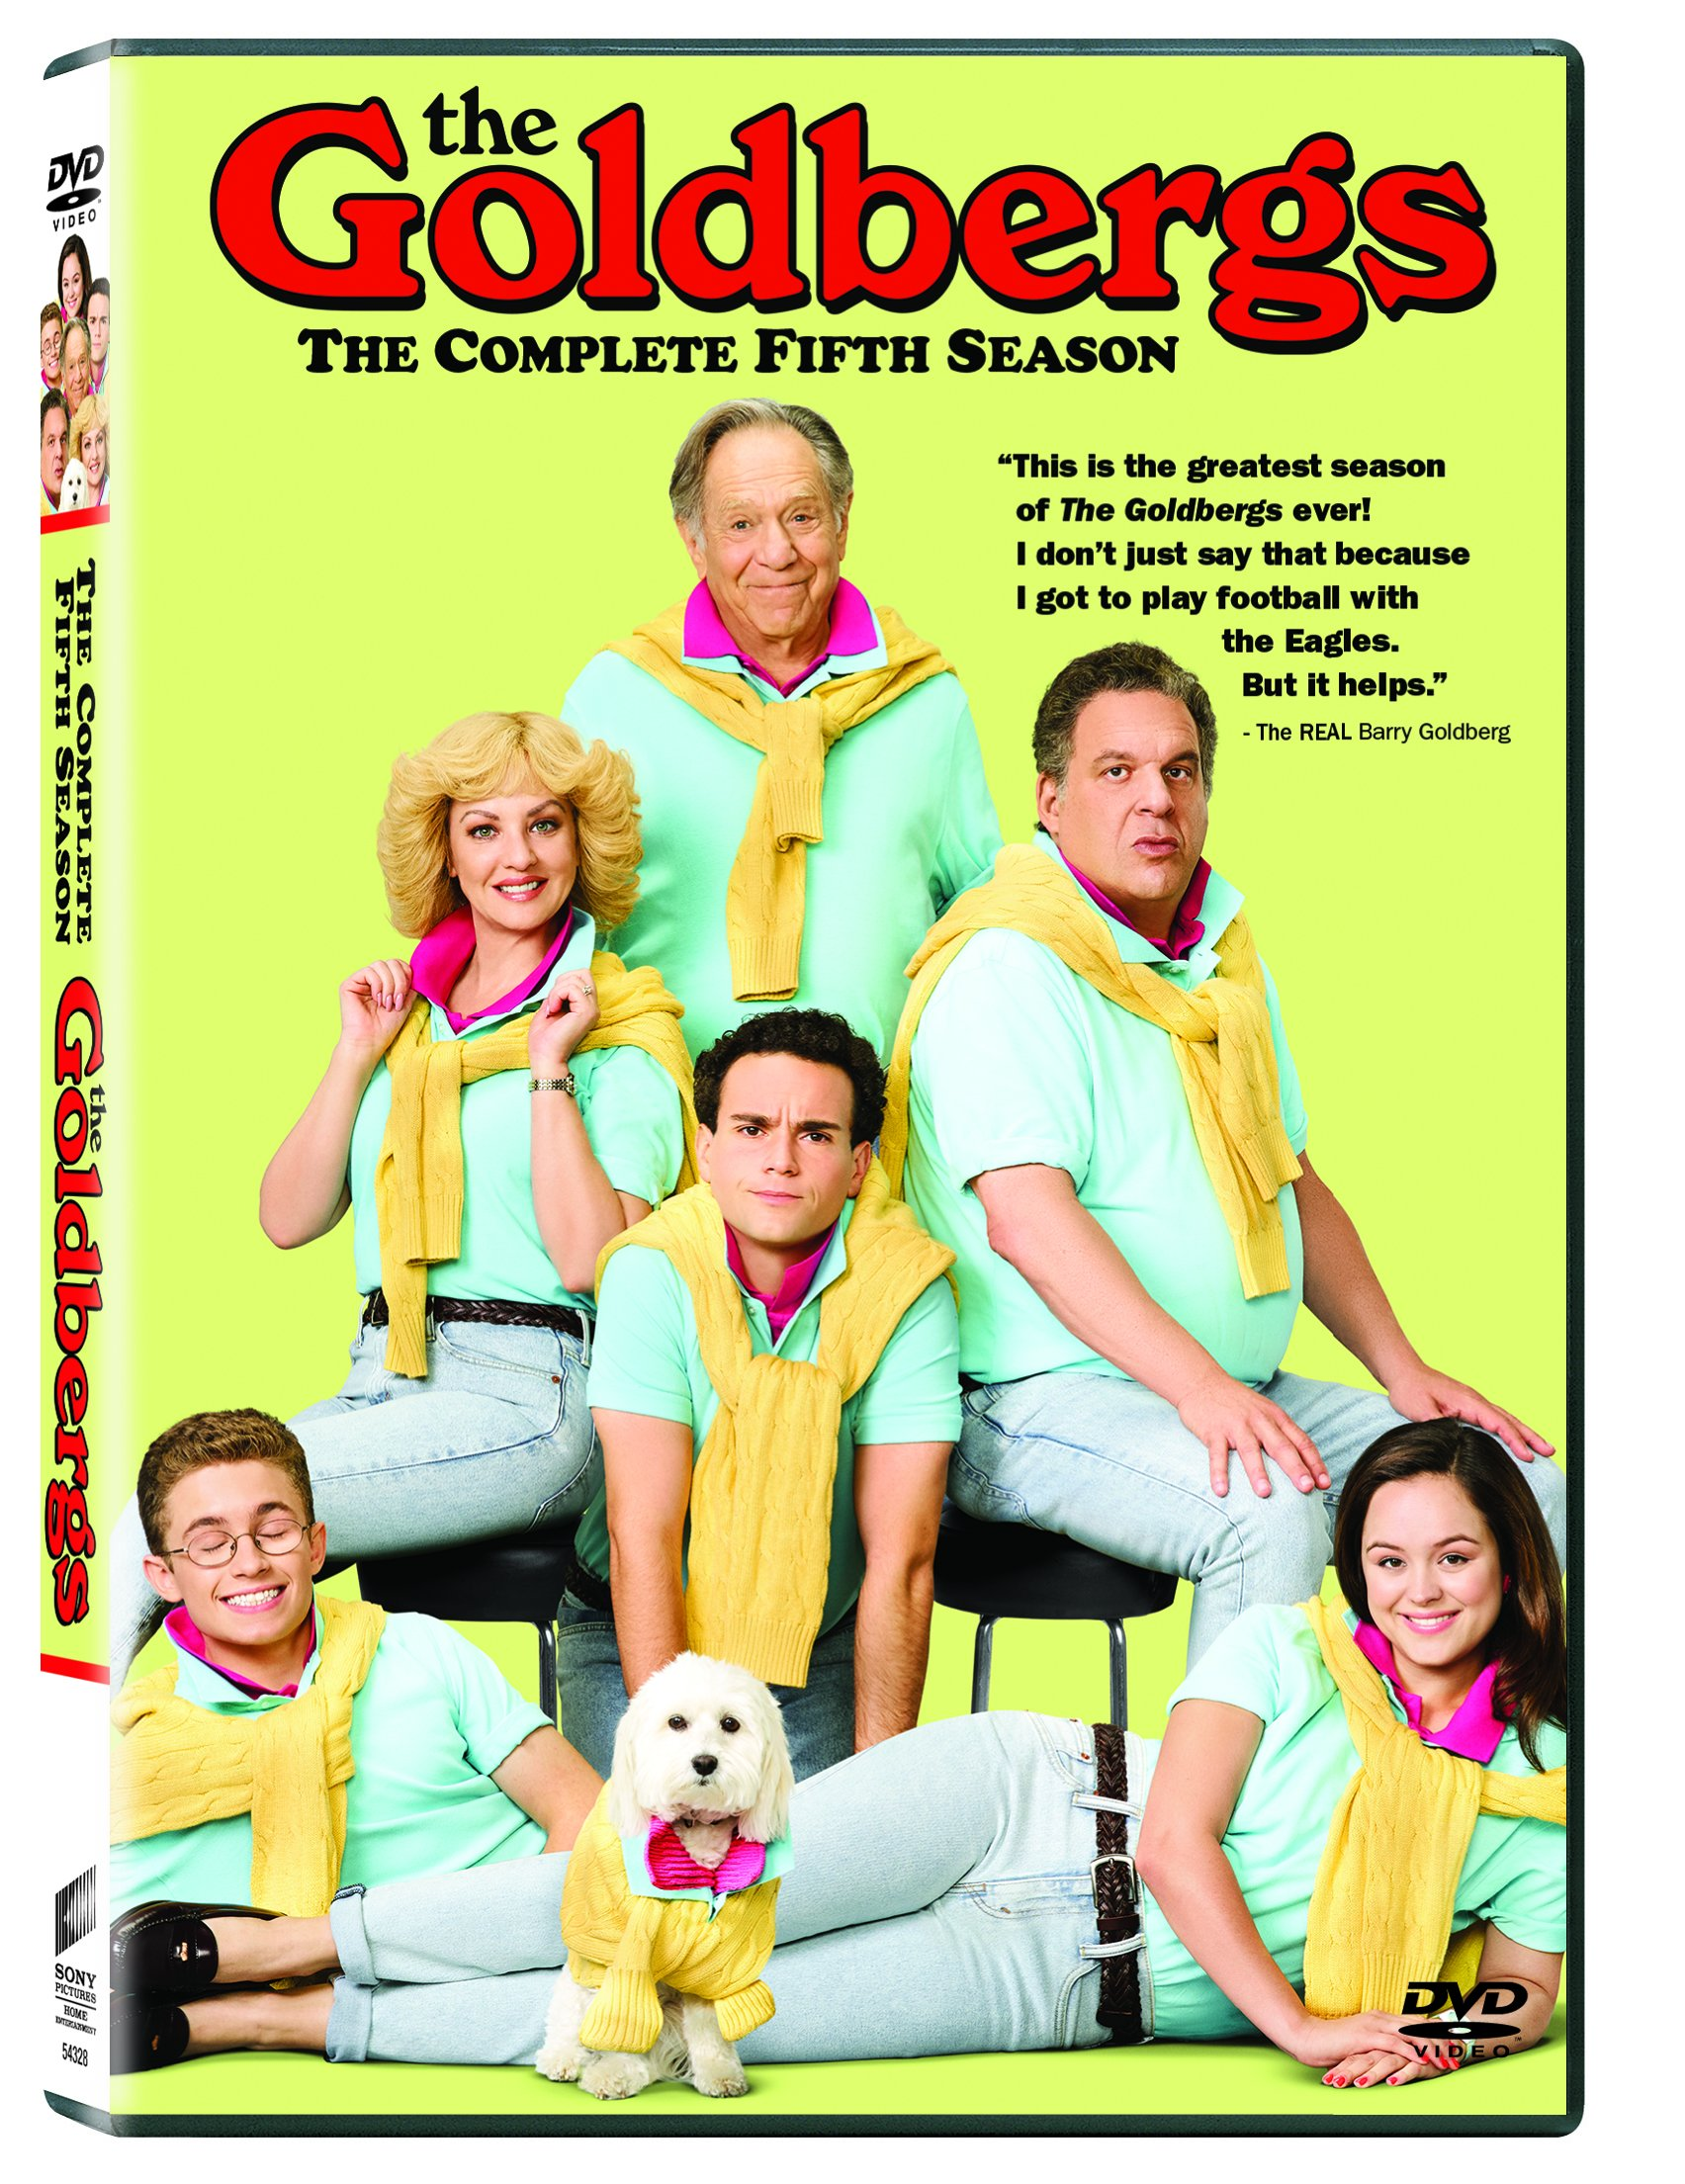 DVD : The Goldbergs: The Complete Fifth Season (Widescreen, Dolby, AC-3, 3 Pack, Subtitled)